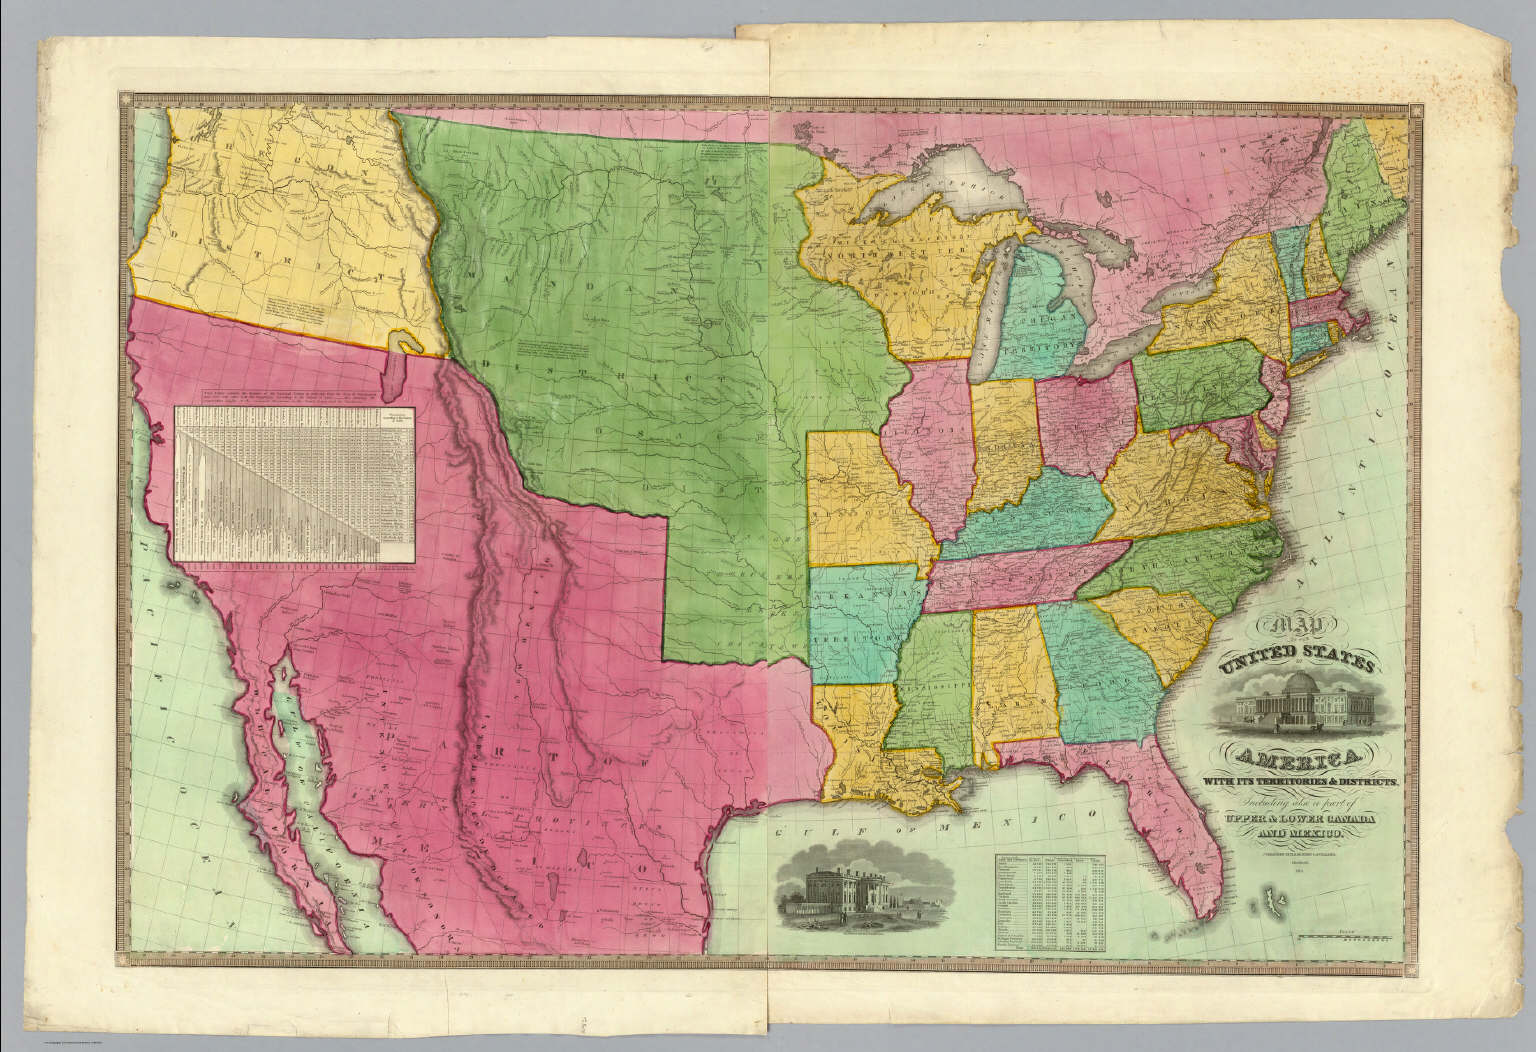 America Map Of States.Map Of The United States Of America Barber B B Willard A 1835